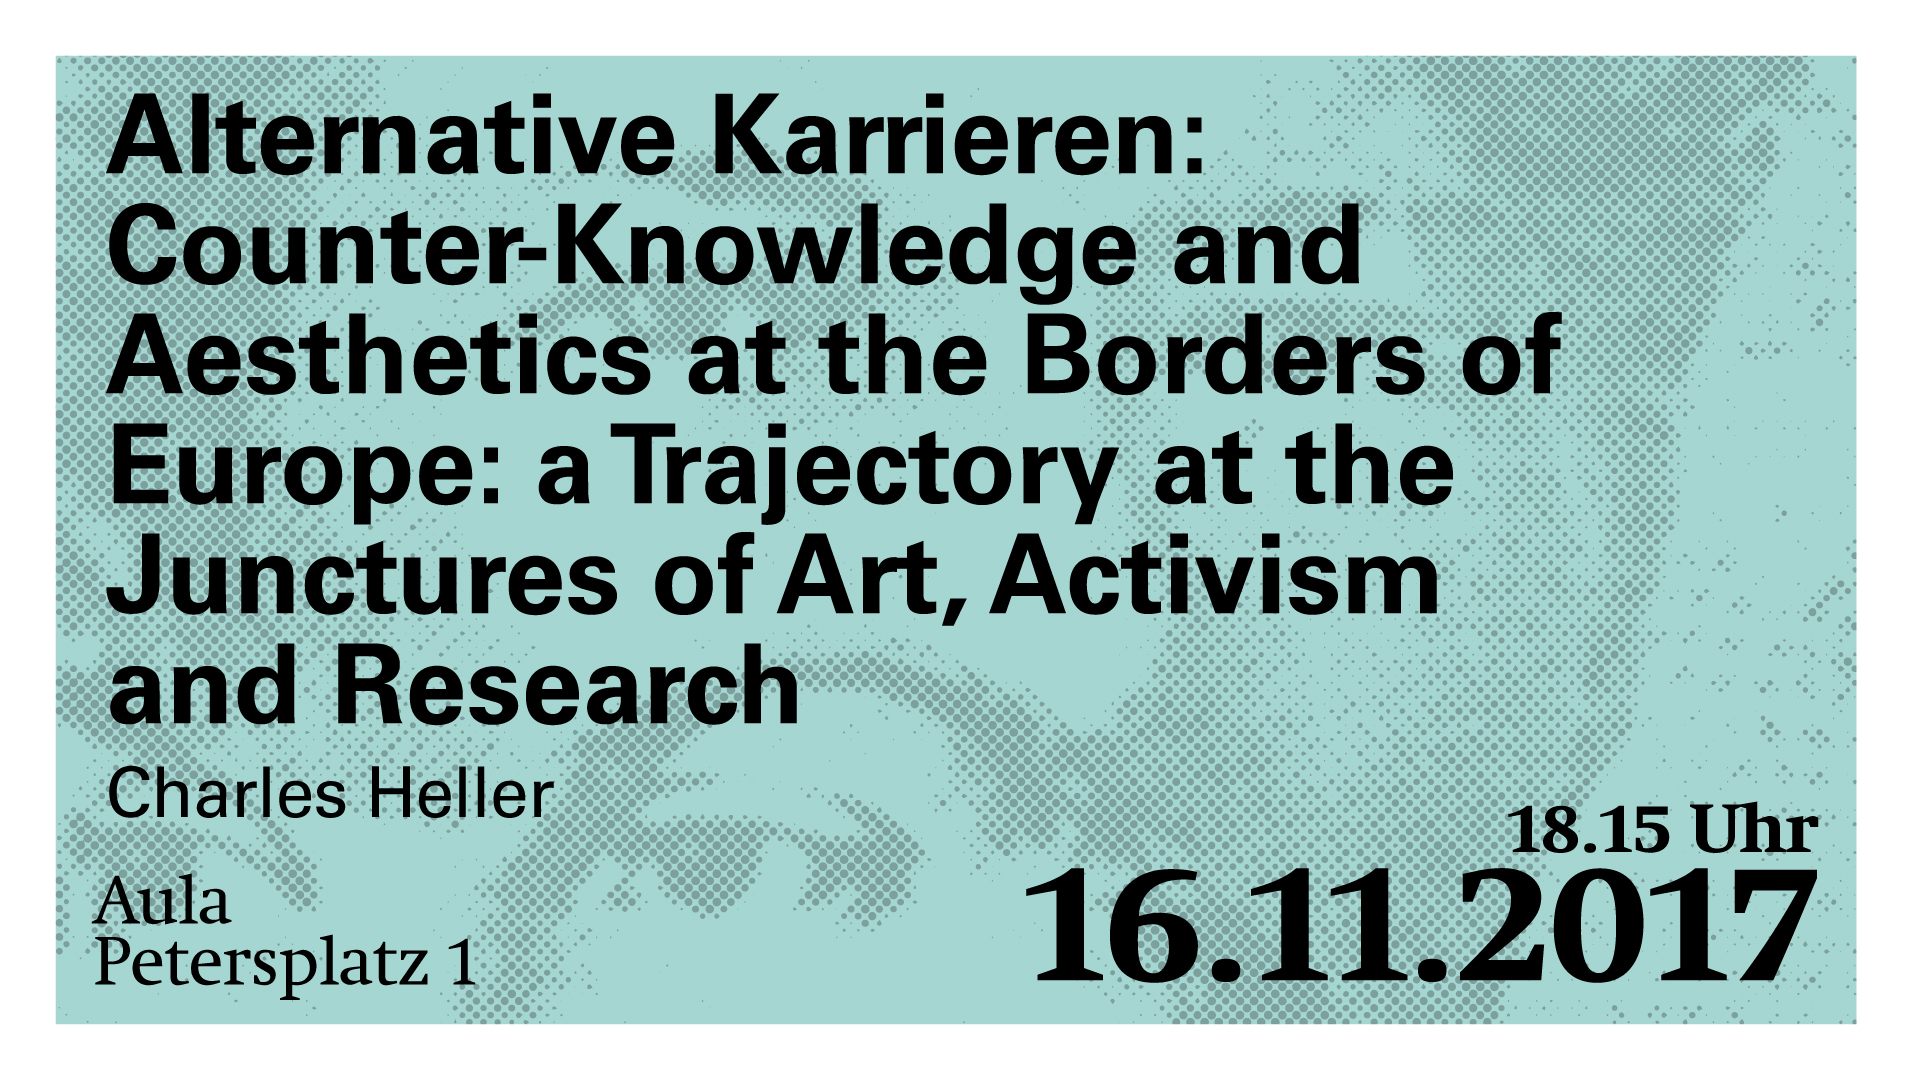 Charles Heller: Alternative Karrieren: Counter-Knowledge and Aesthetics at the Borders of Europe: a Trajectory at the Junctures of Art, Activism and Research